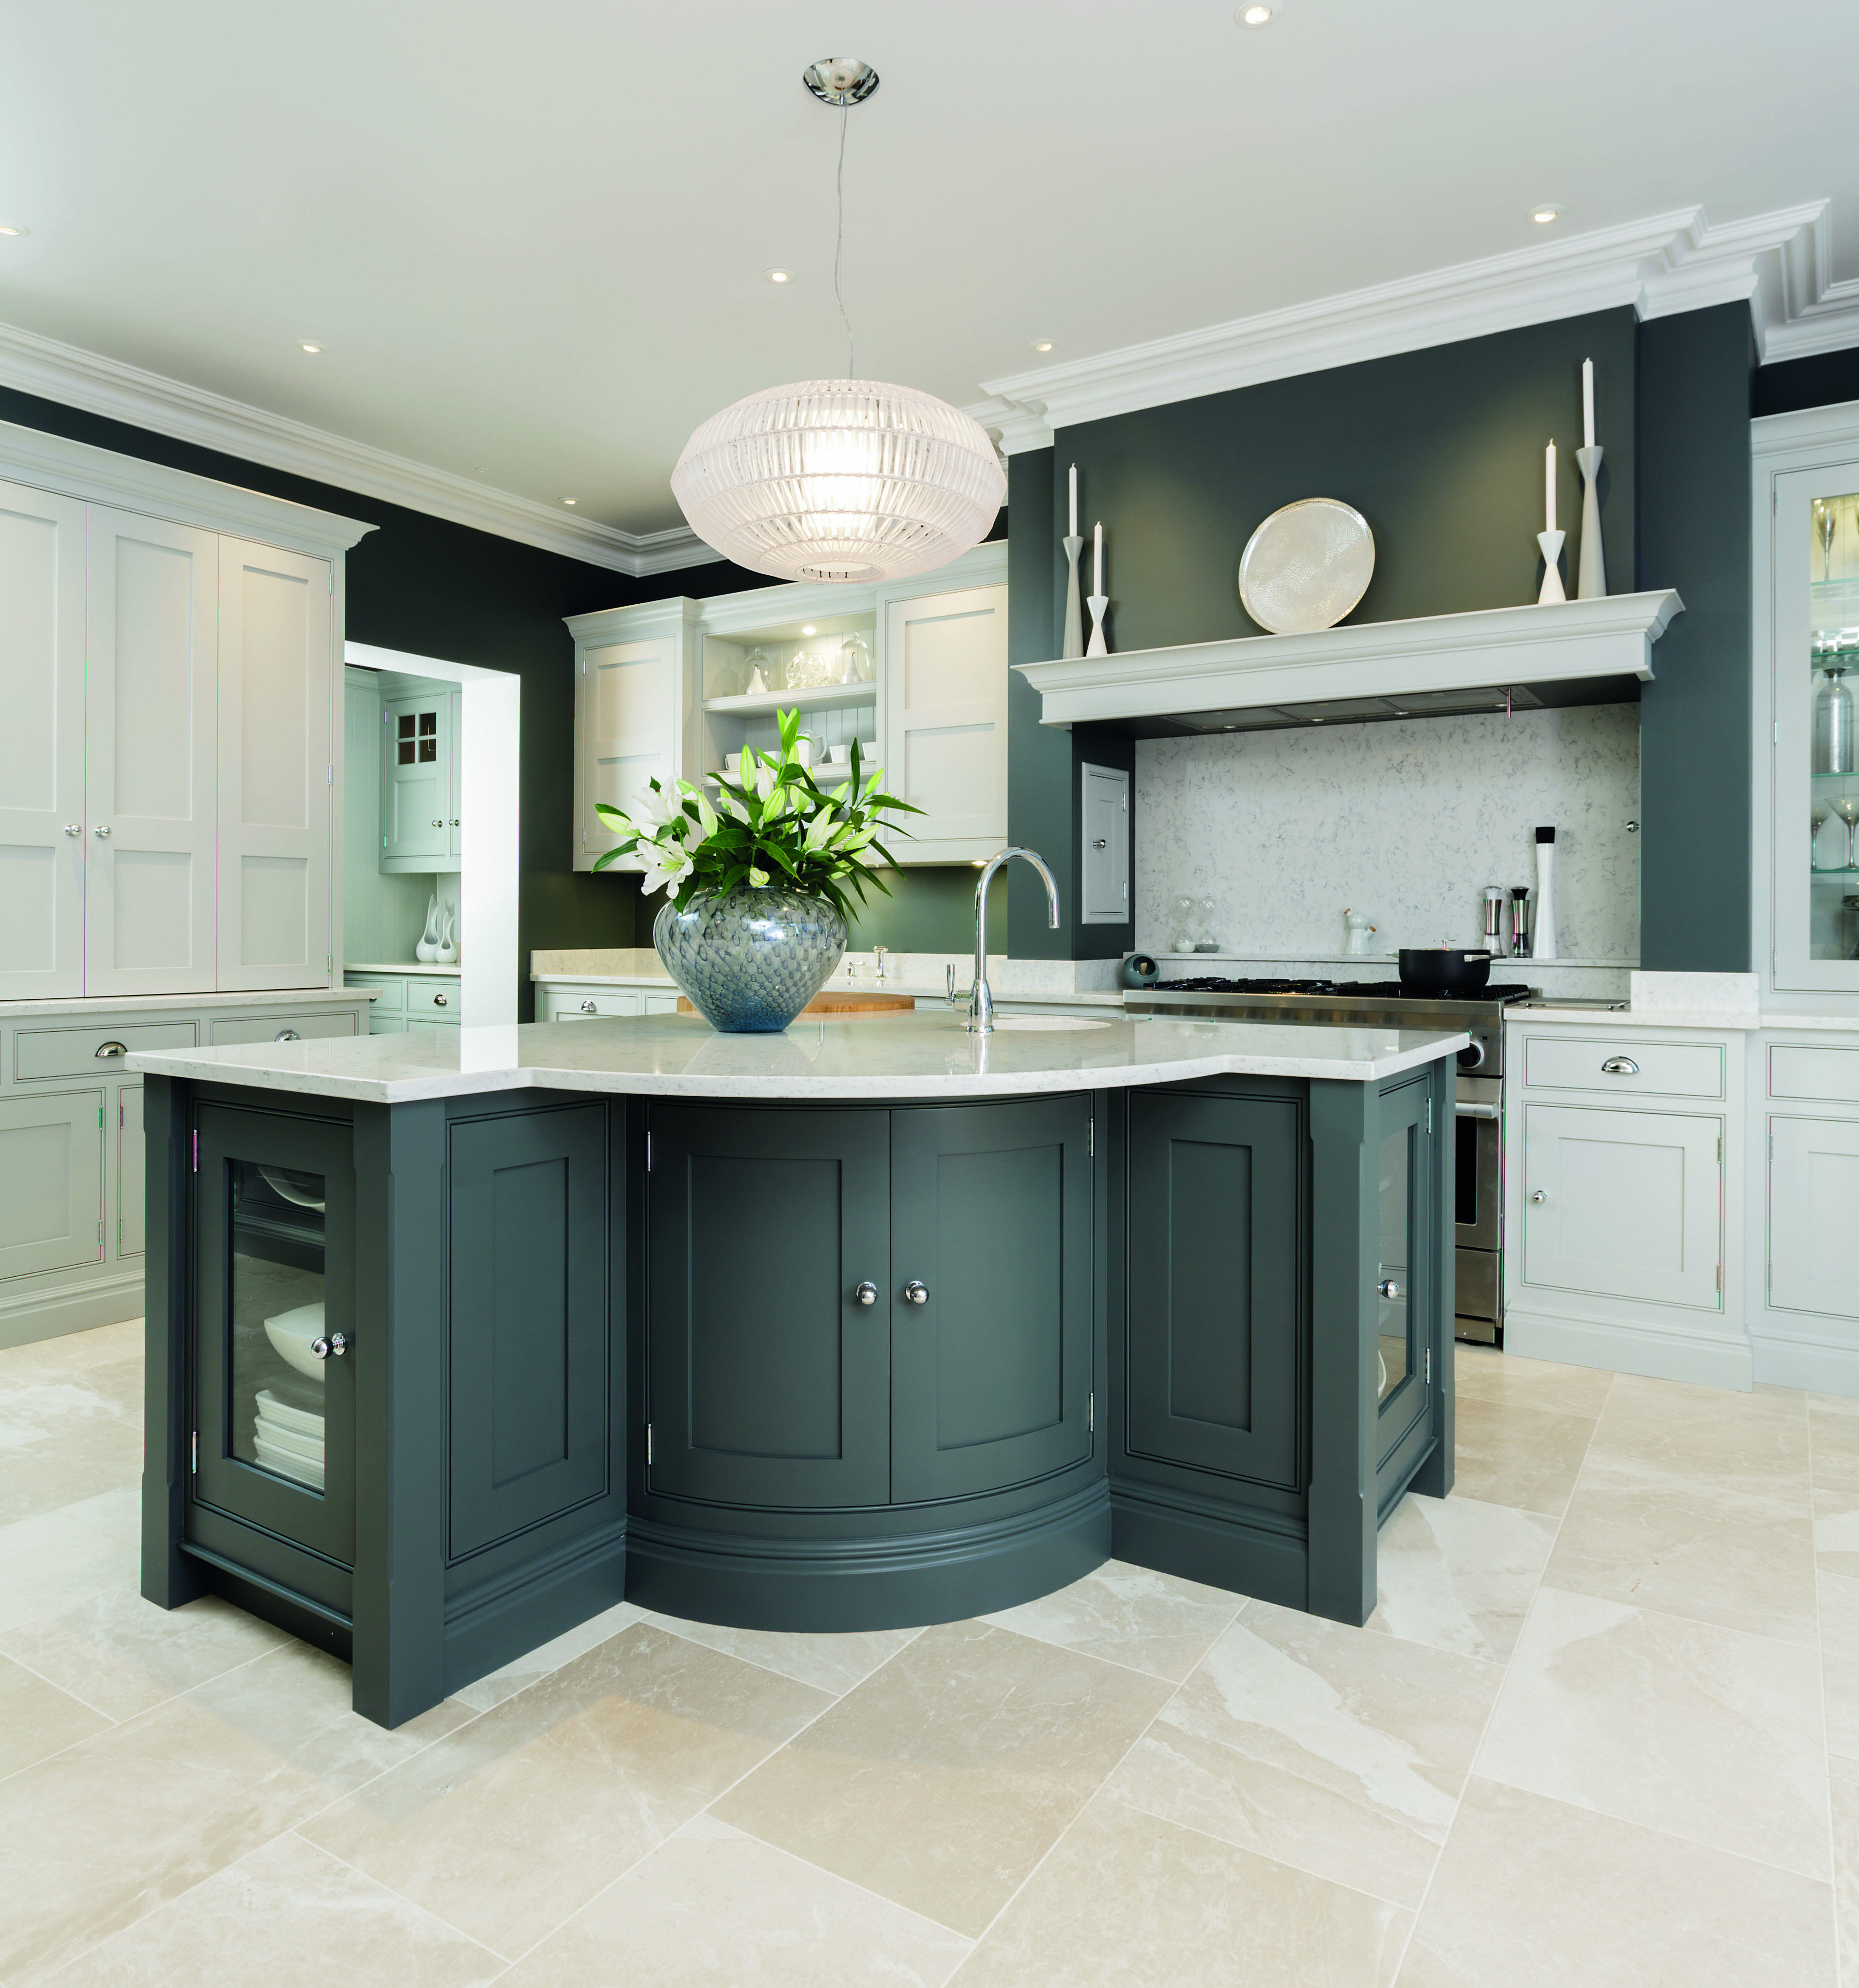 This bespoke kitchen by Tom Howley features a show